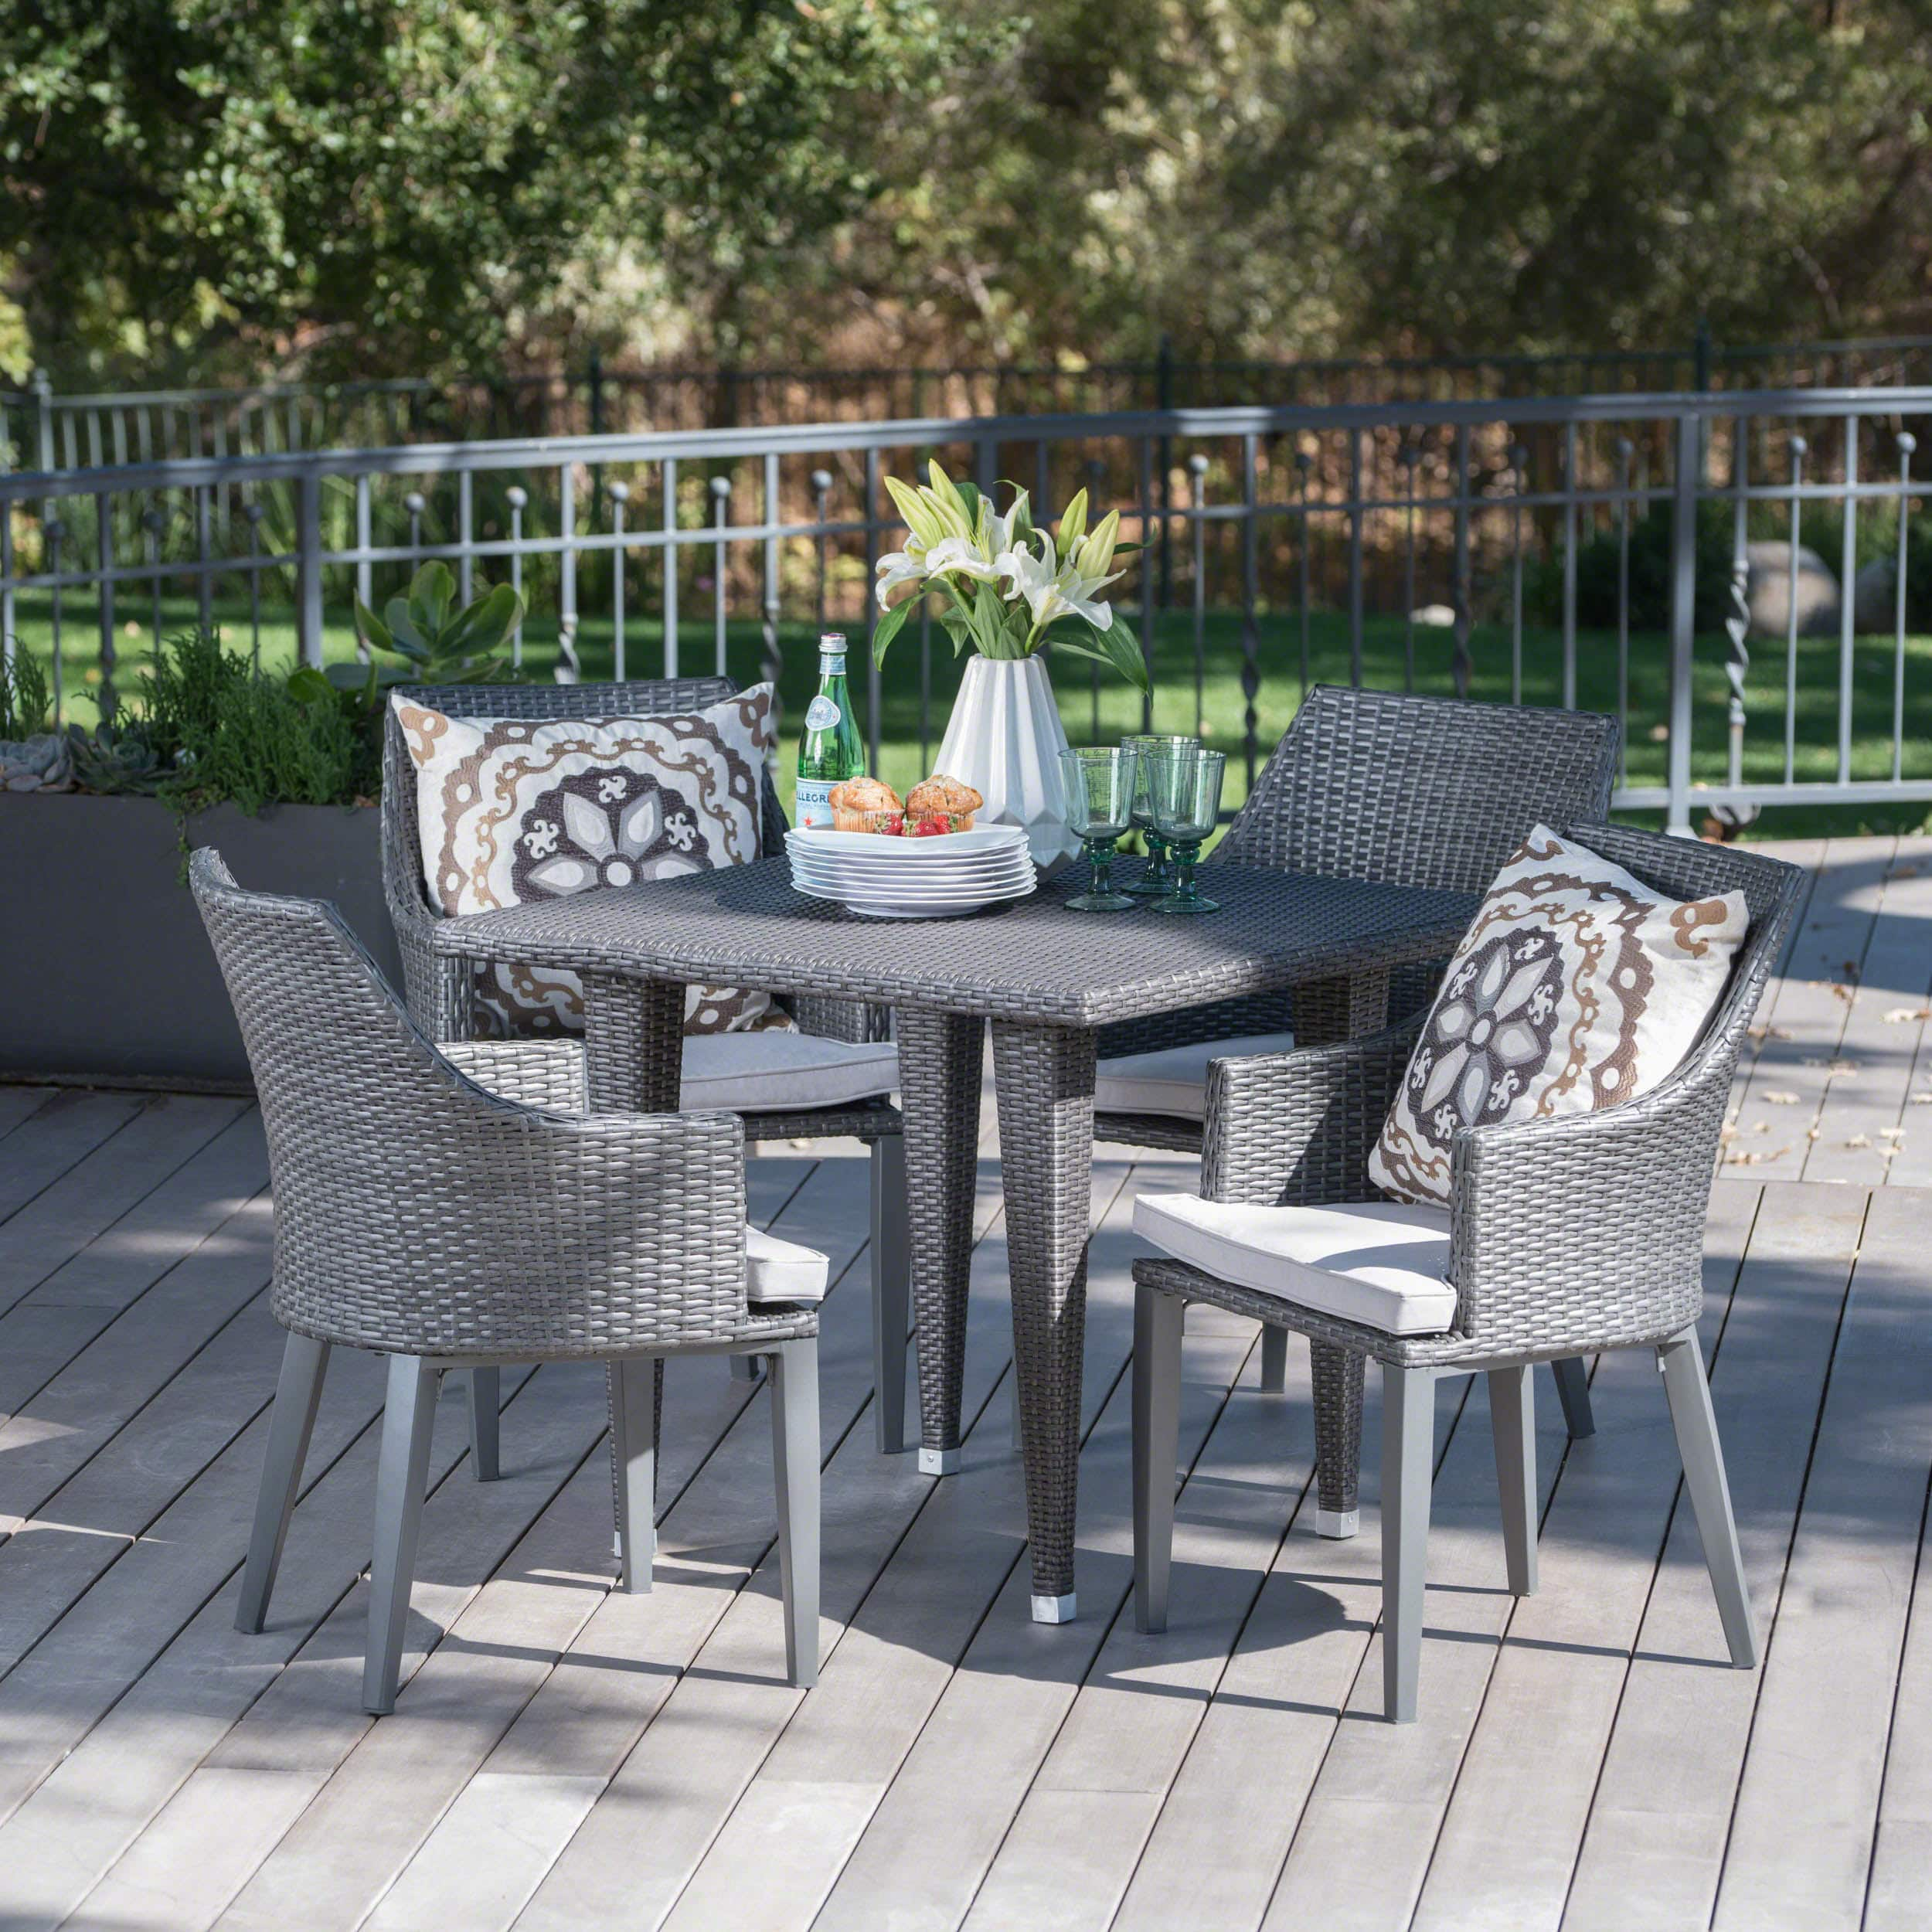 Christopher Knight Home Lenox Outdoor 5 Piece Square Wicker Dining Set With  Cushions By